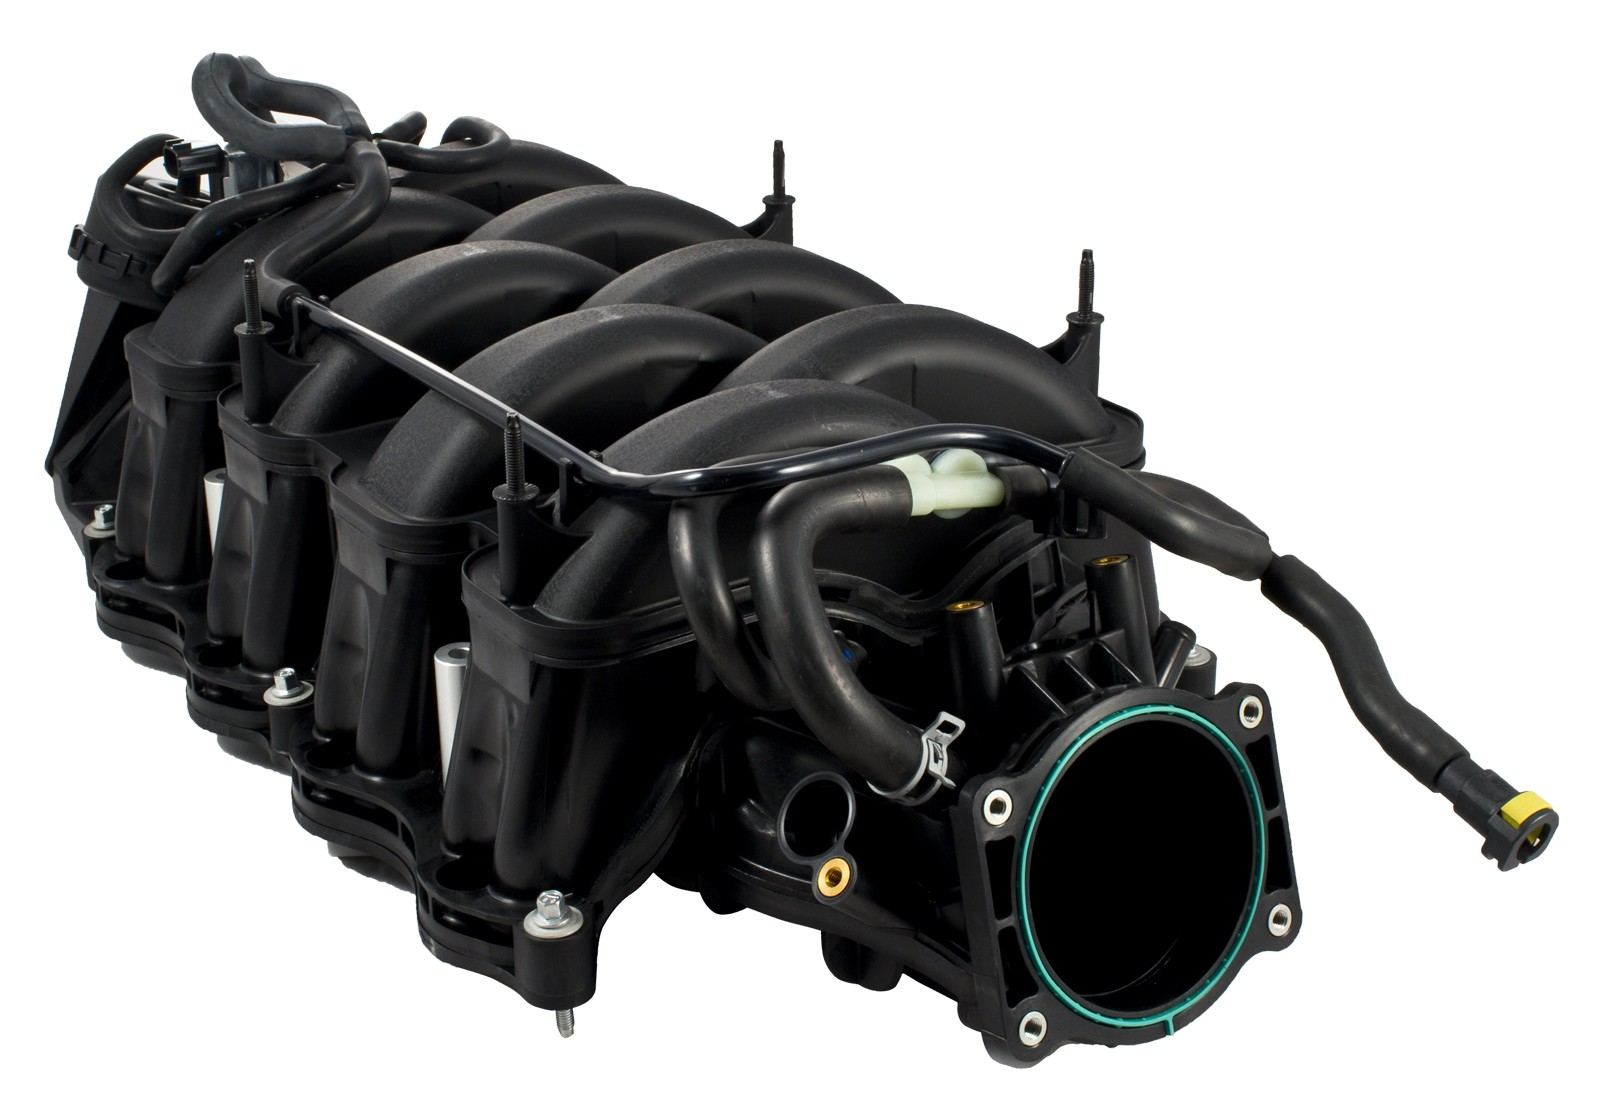 2015-2017 Mustang GT 5.0 Ford Racing Shelby GT350 Intake ...